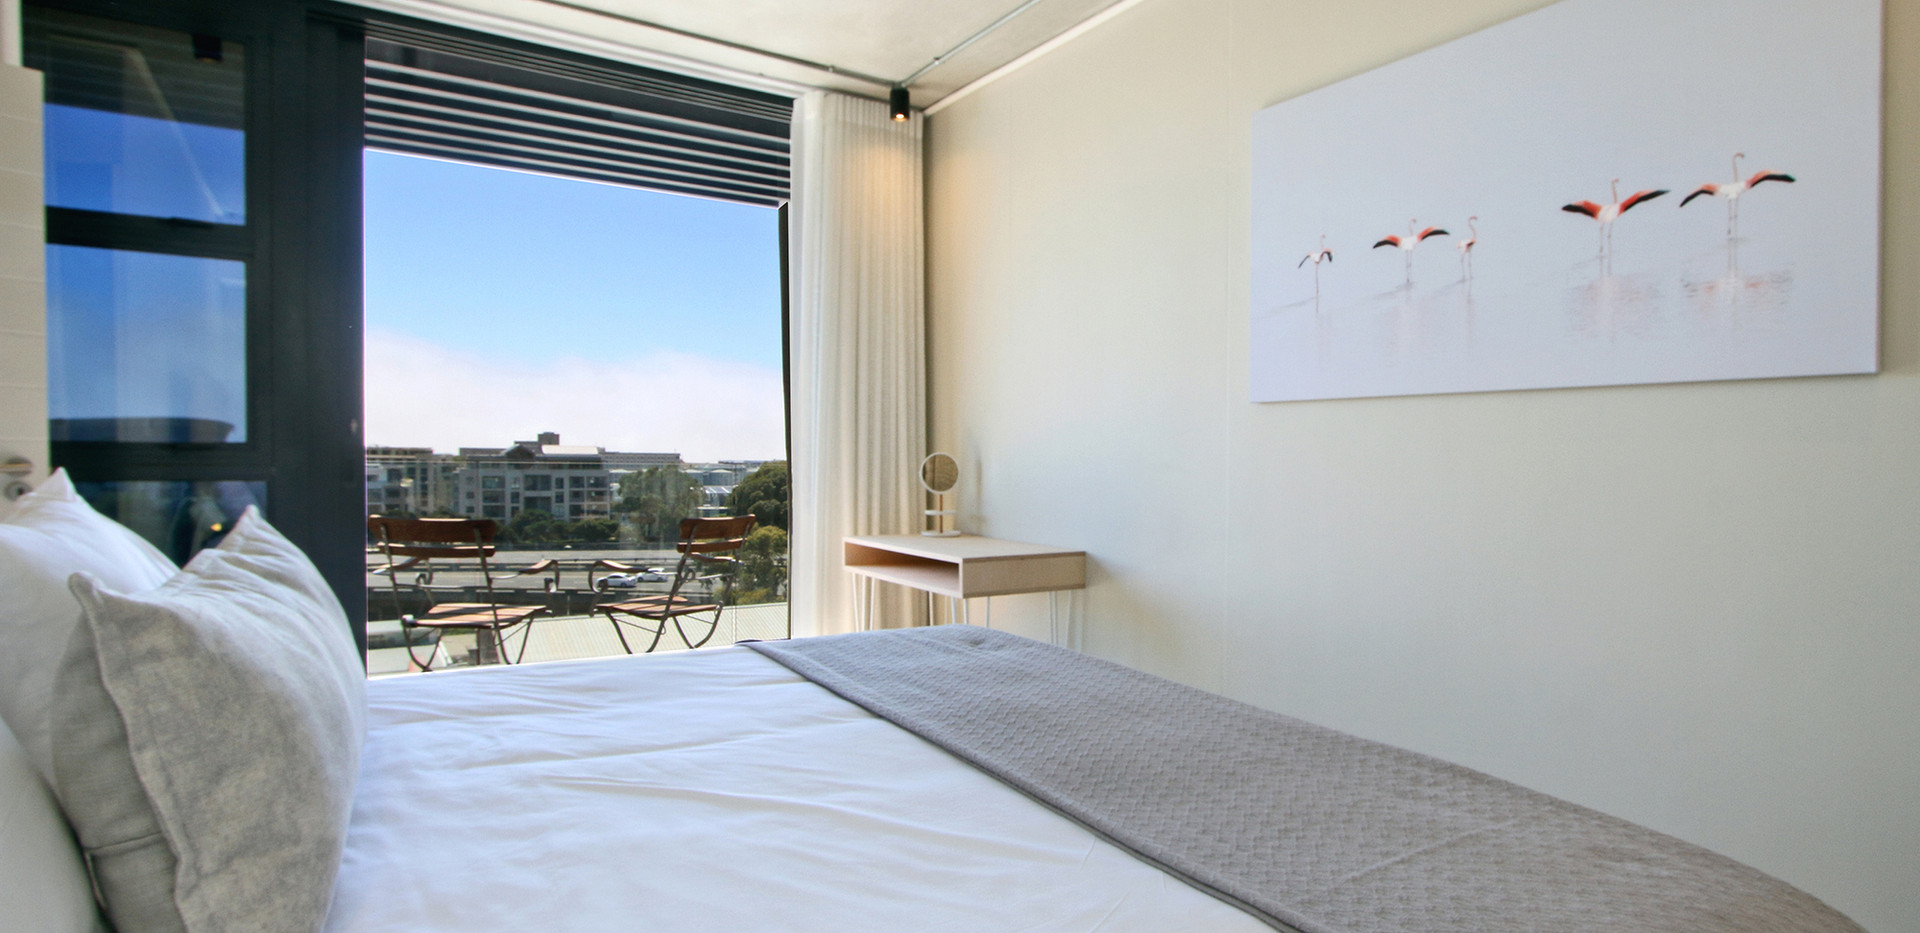 Bedroom_Penthouse_Docklands_609_ITC_3.jp